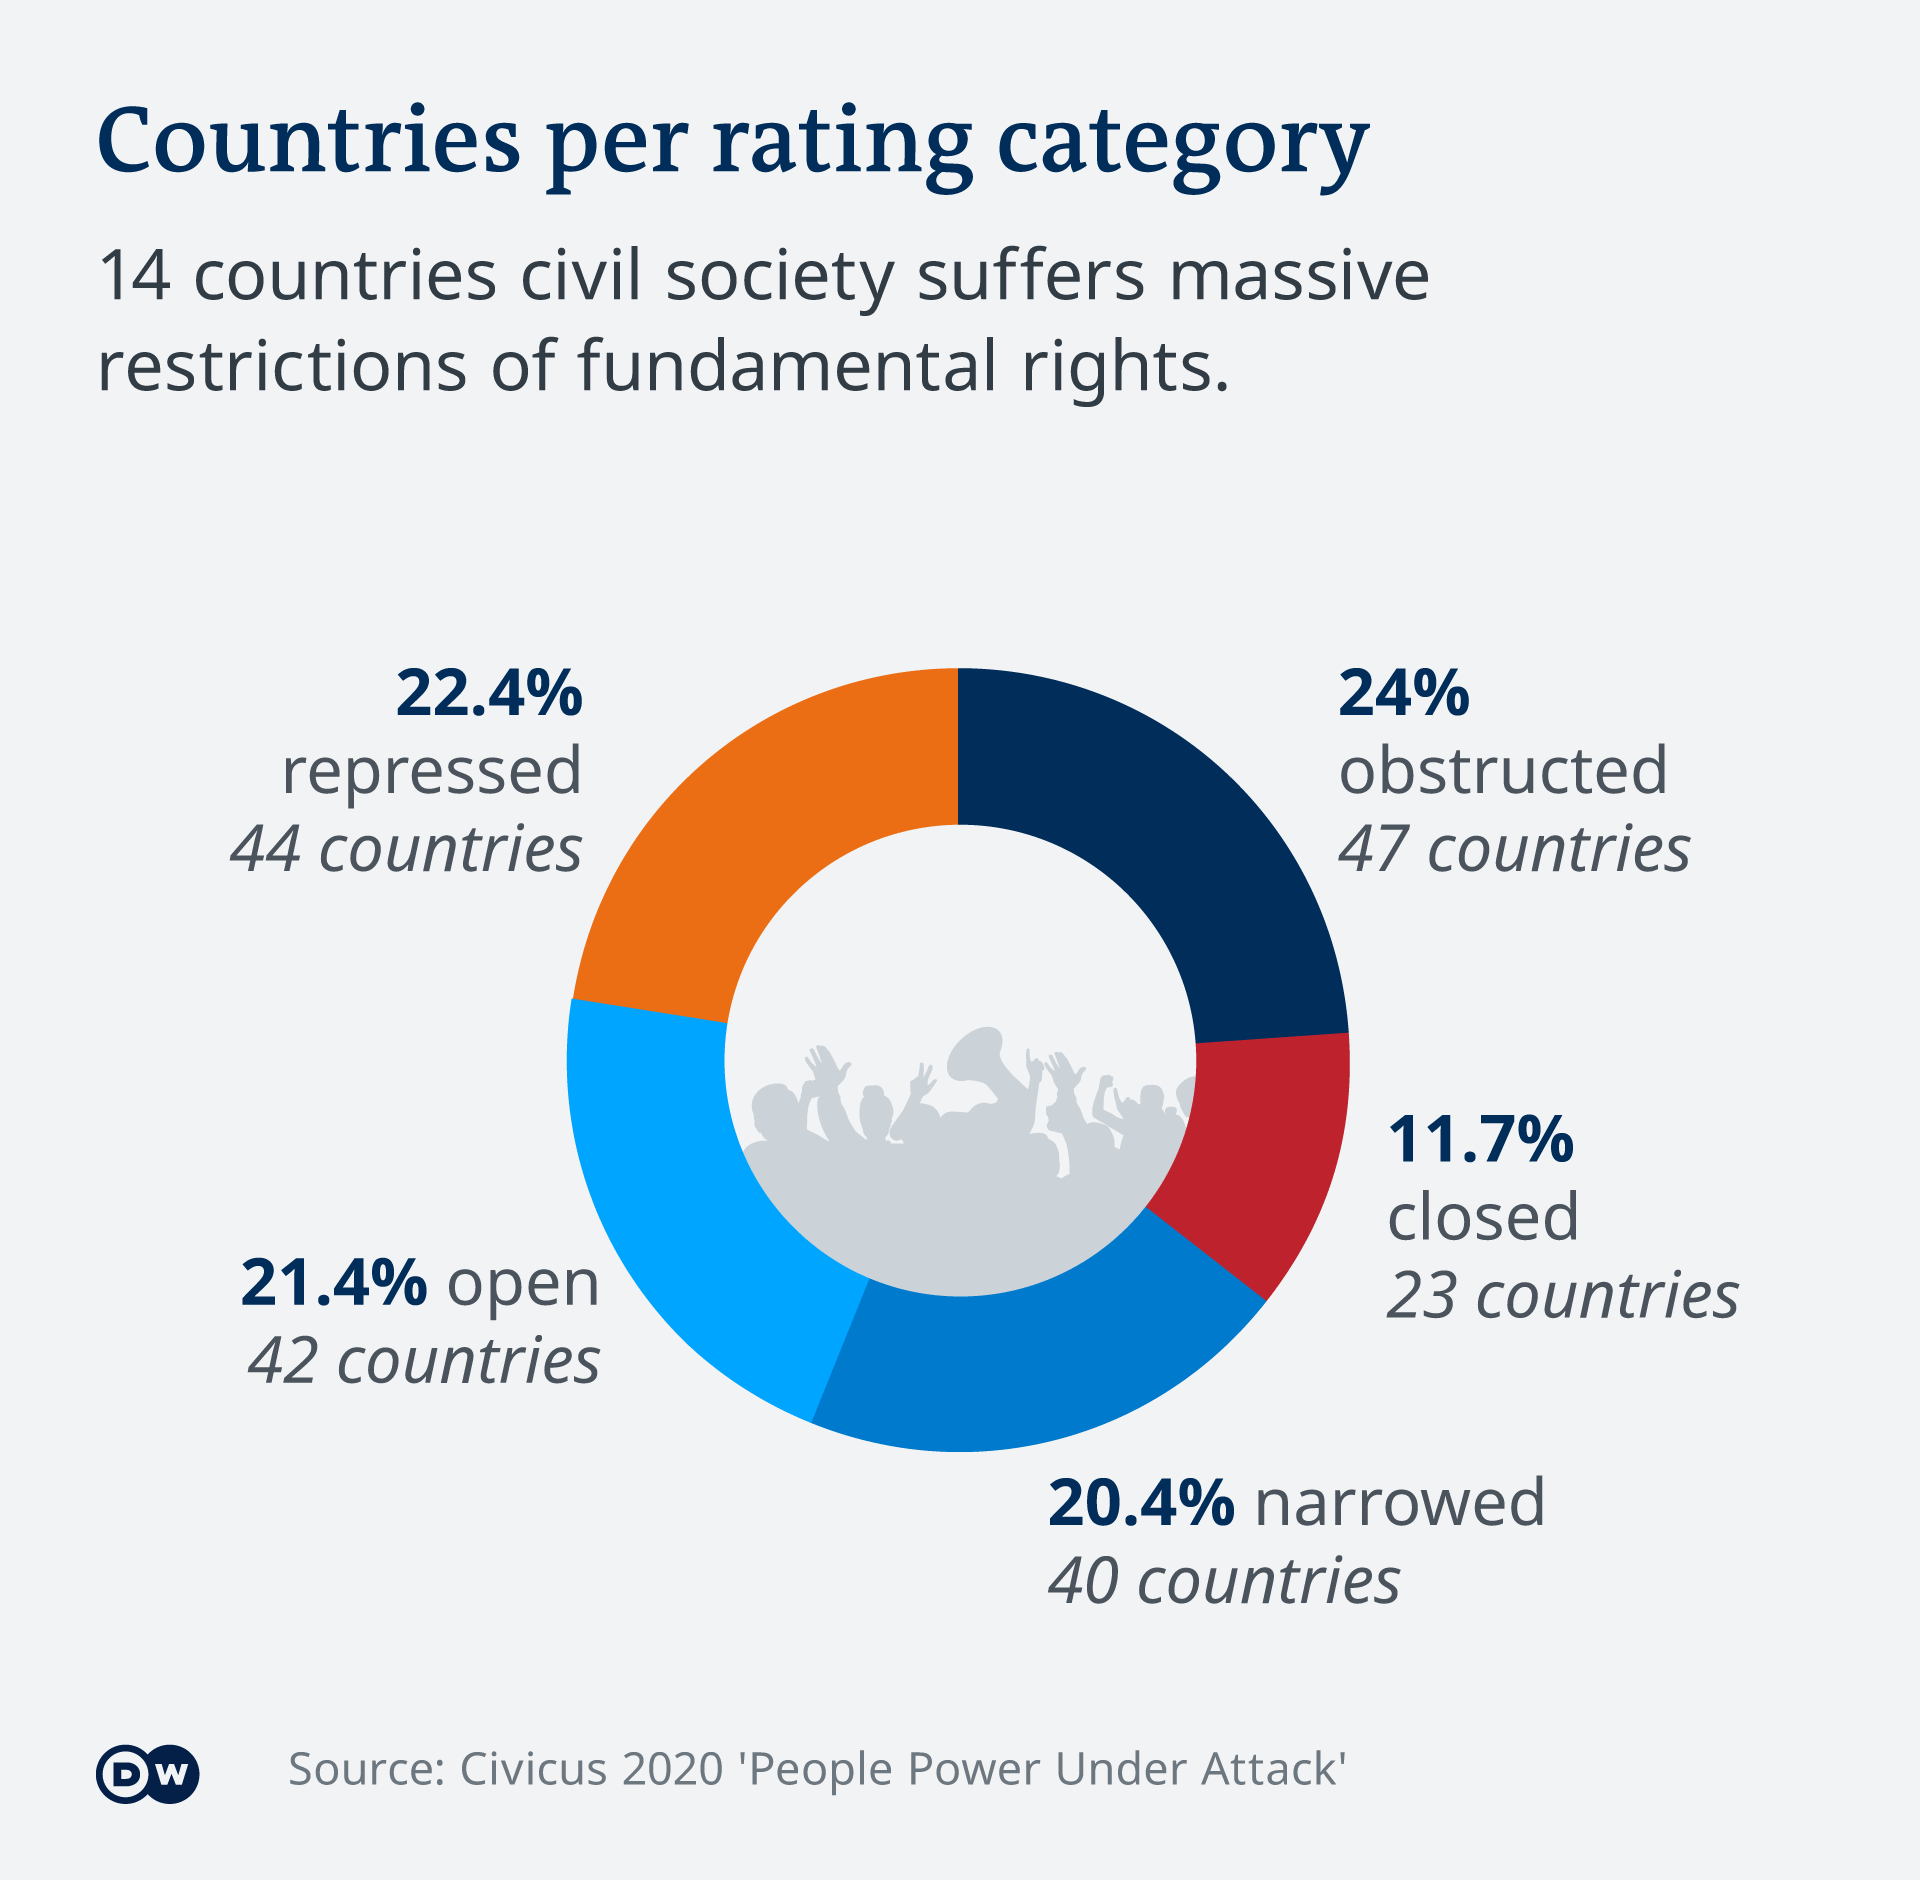 Infographic showing the breakdown of countries deemed repressed, obstructed, closed, open, and narrowed according to the Atlas of Civil Society report